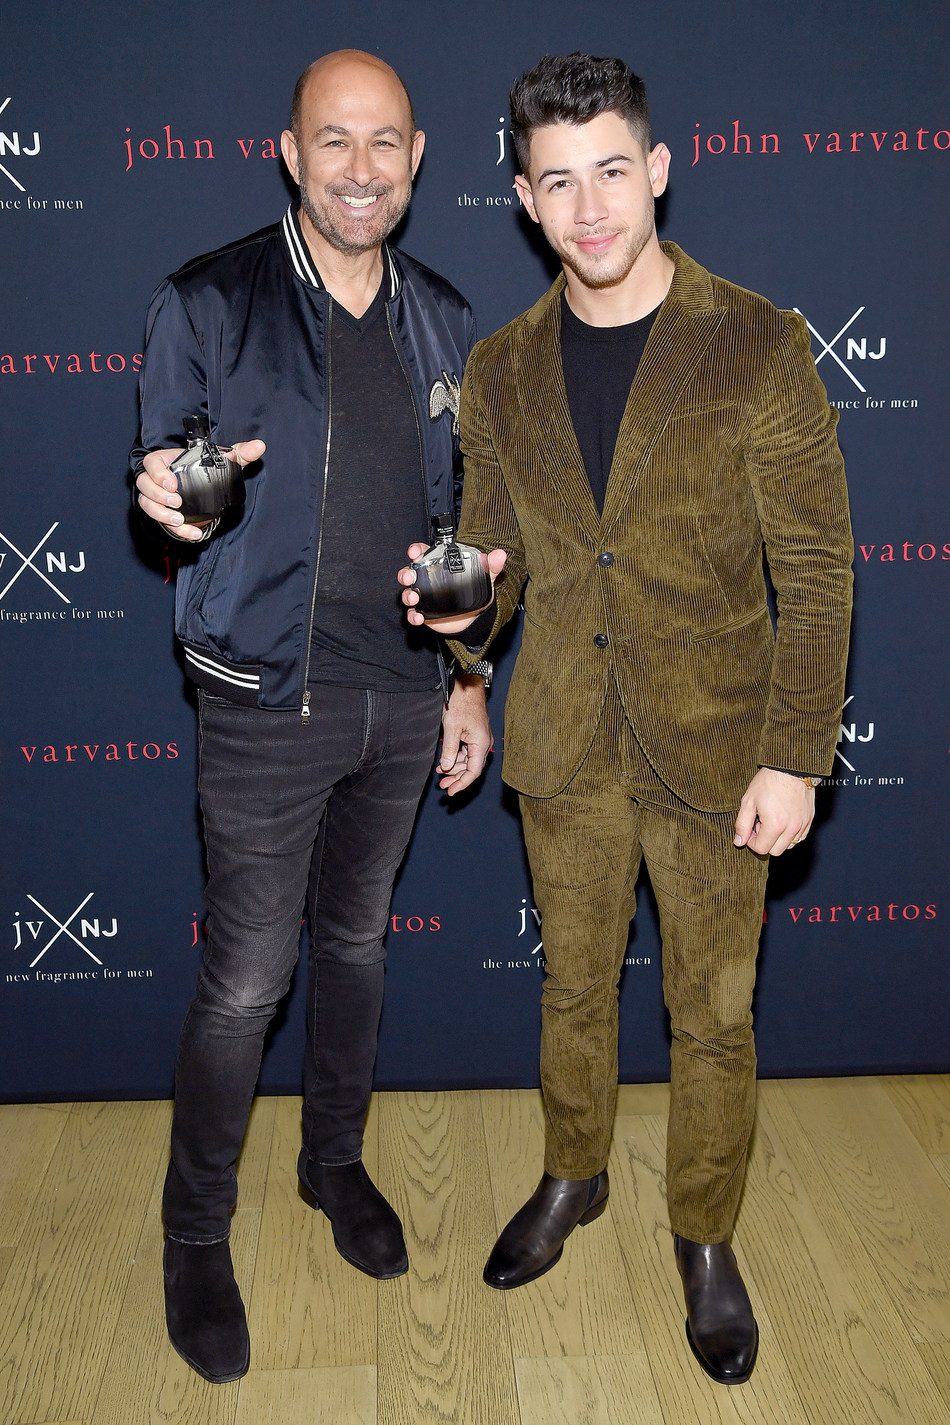 International menswear designer John Varvatos and Musician/Actor Nick Jonas launch their new fragrance JVxNJ Silver Edition on November 7, 2019 in New York City. (Photo: Getty Images)